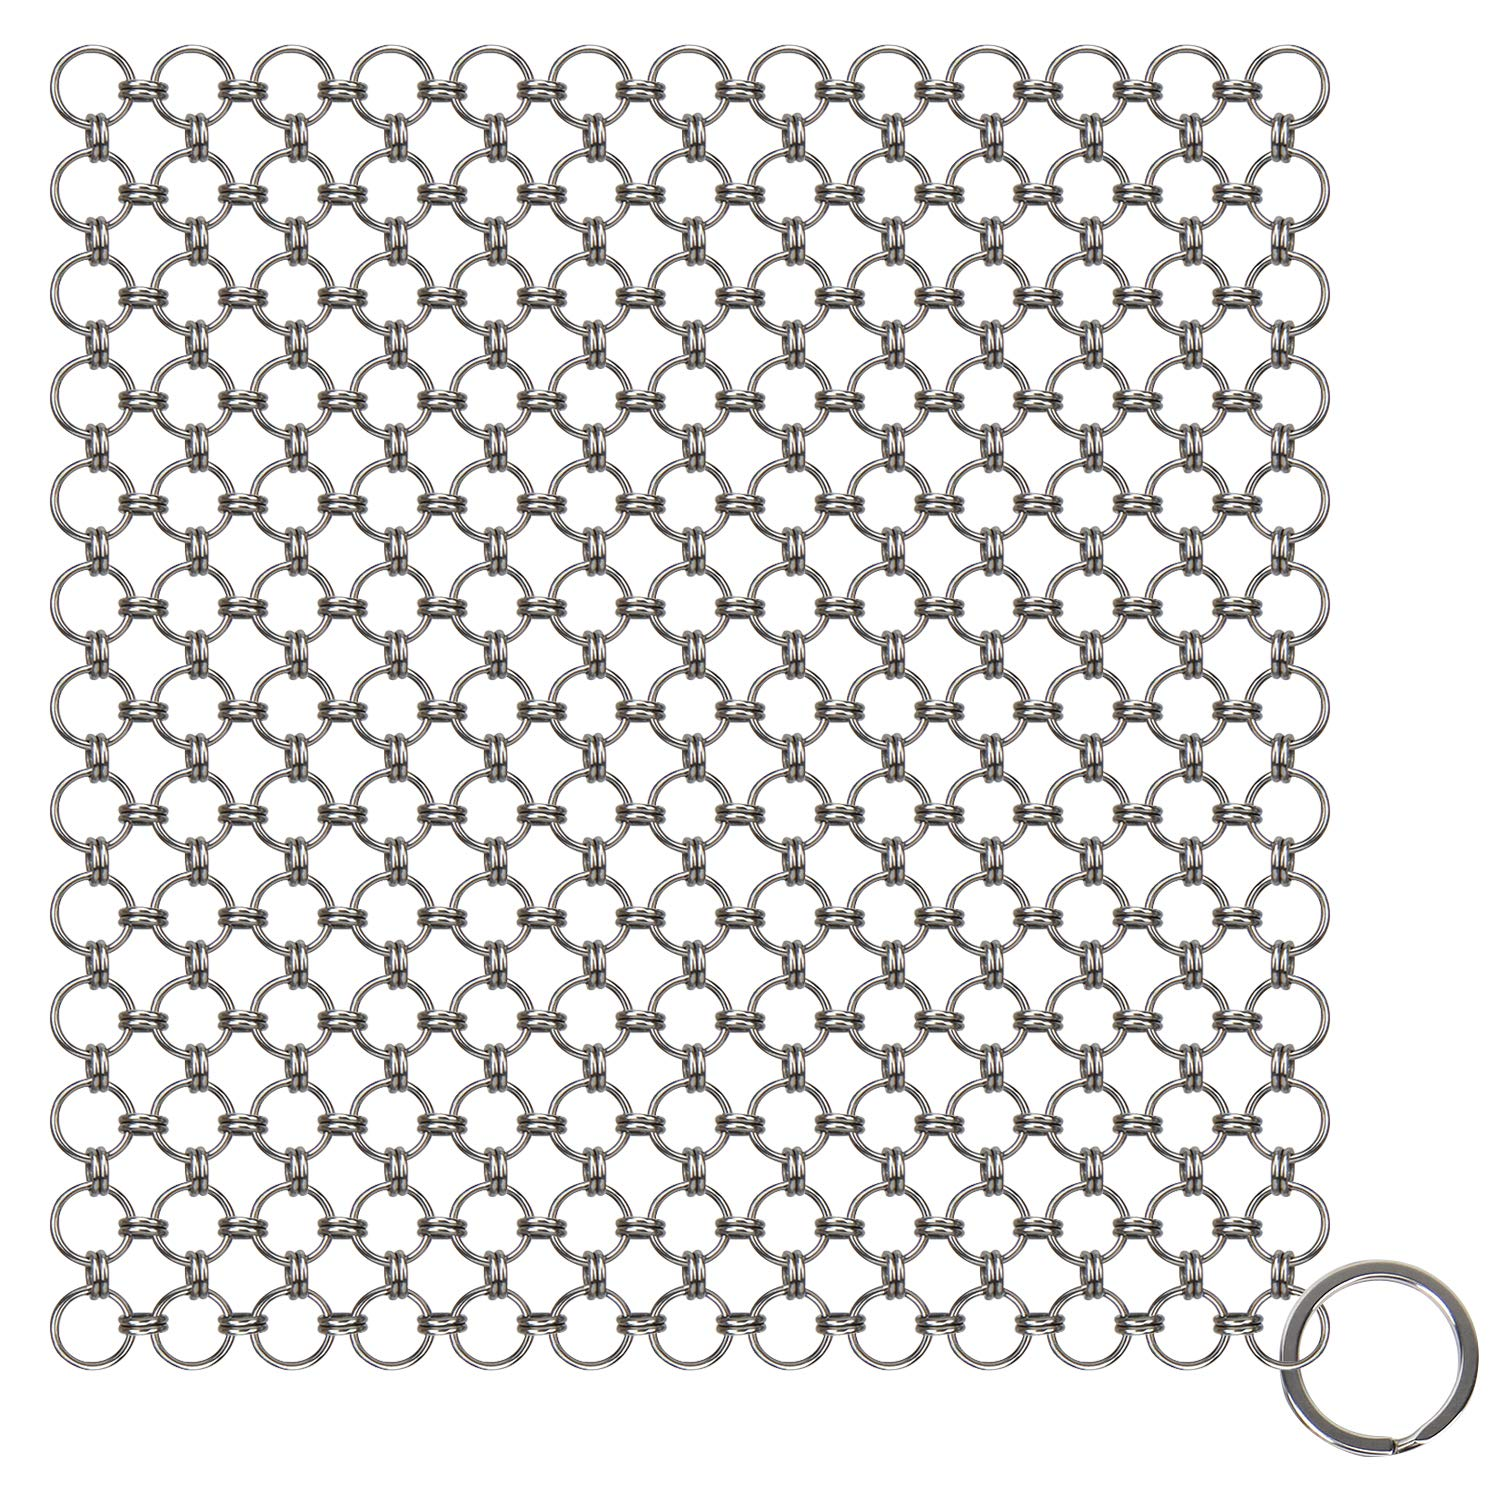 Blisstime Cast Iron Cleaner Premium Stainless Steel Chainmail Scrubber